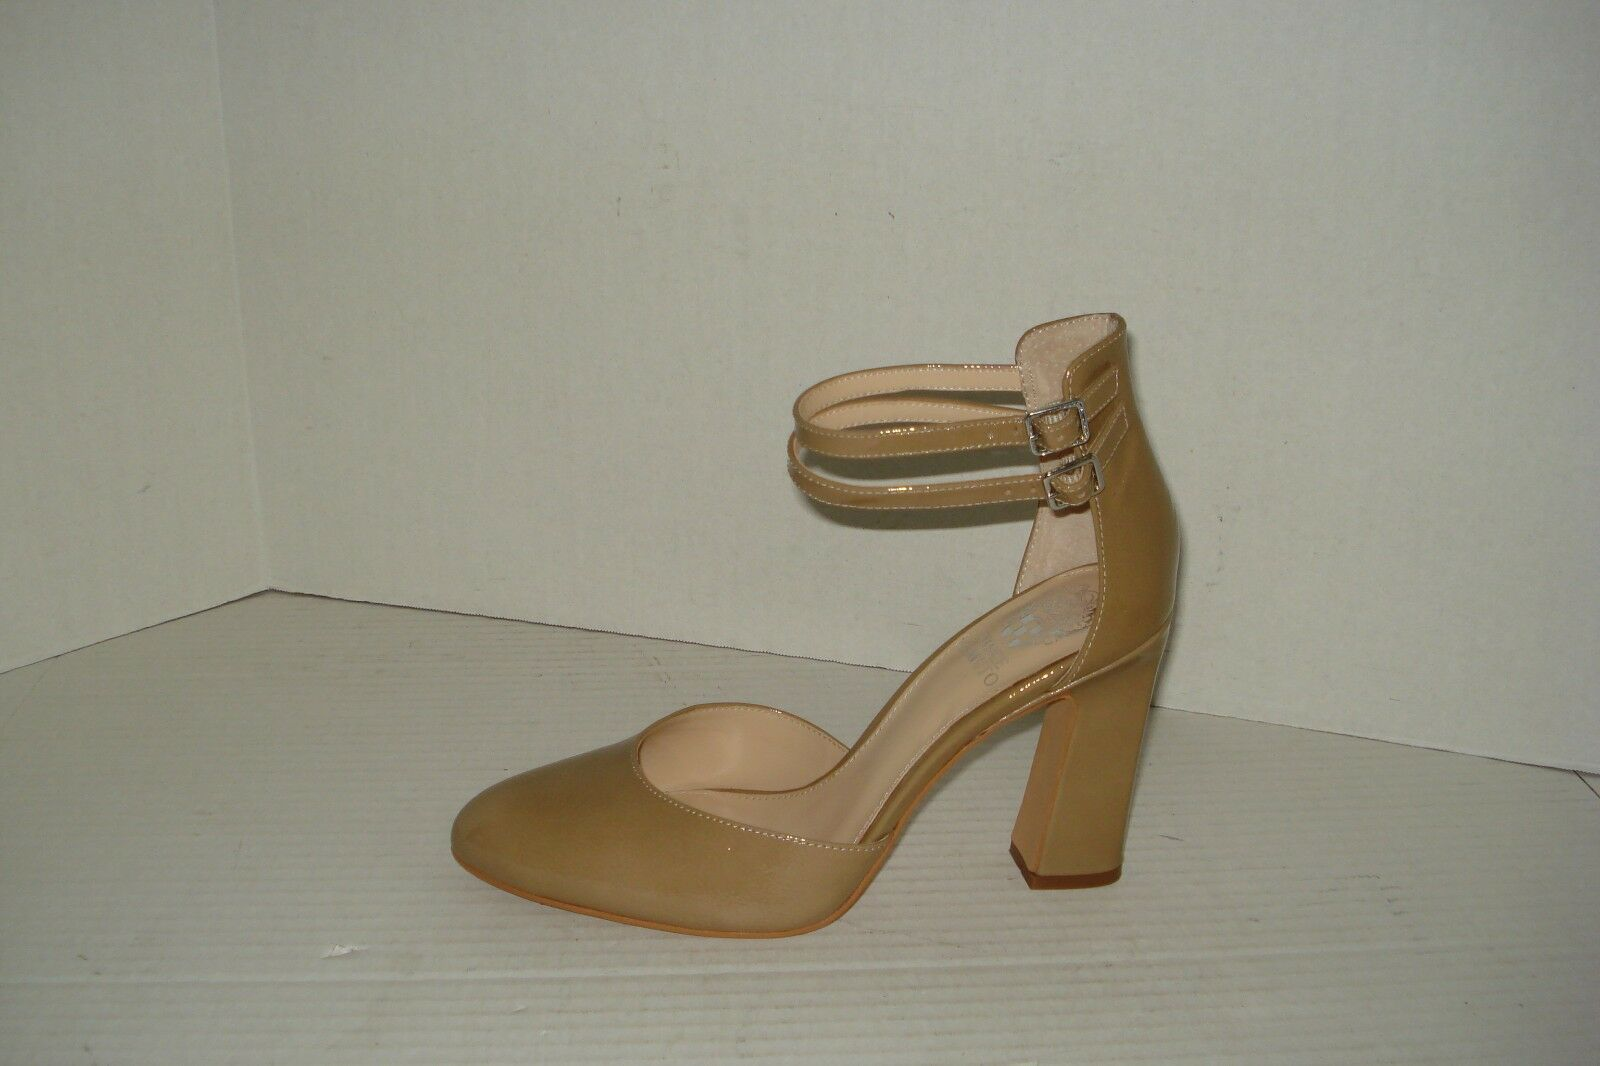 VINCE CAMUTO NUDE PATENT LEATHER WOMEN'S HEELS, SIZE 9M